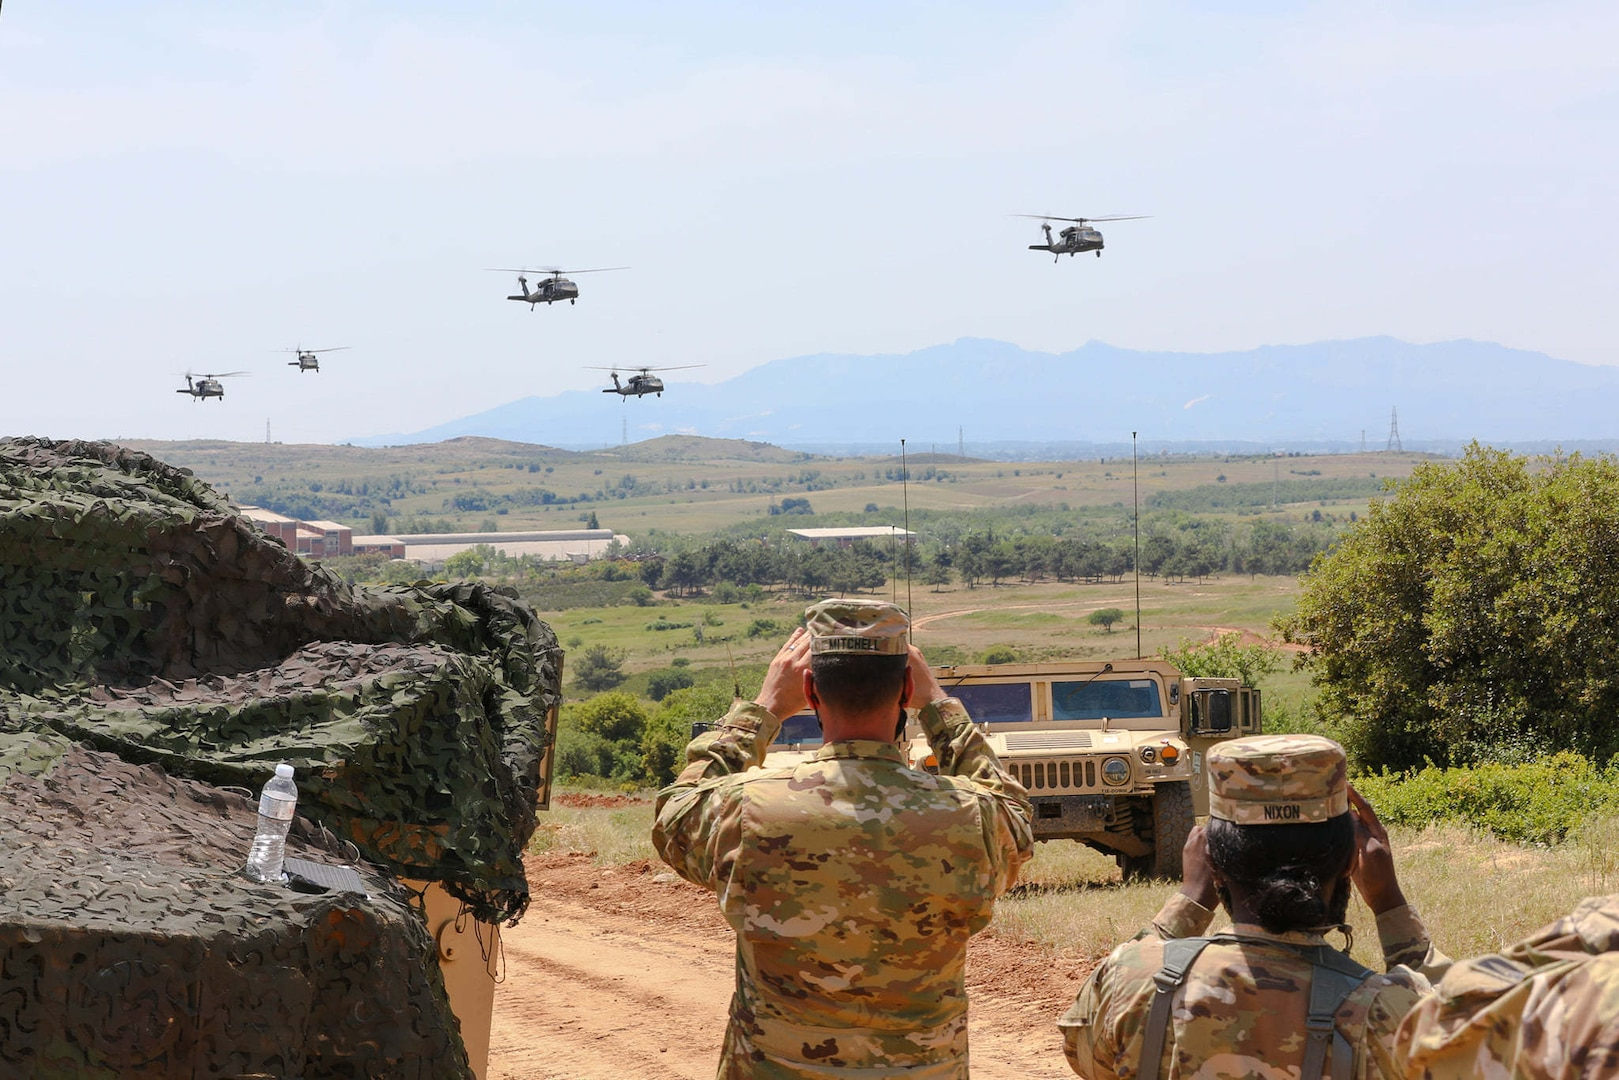 U.S. Soldiers from 1-167th Infantry Regiment, Alabama Army National Guard, participated in Greece-led CENTAUR 21 exercise May 24, 2021, at the firing range of Petrochori in Xanthi, Greece.